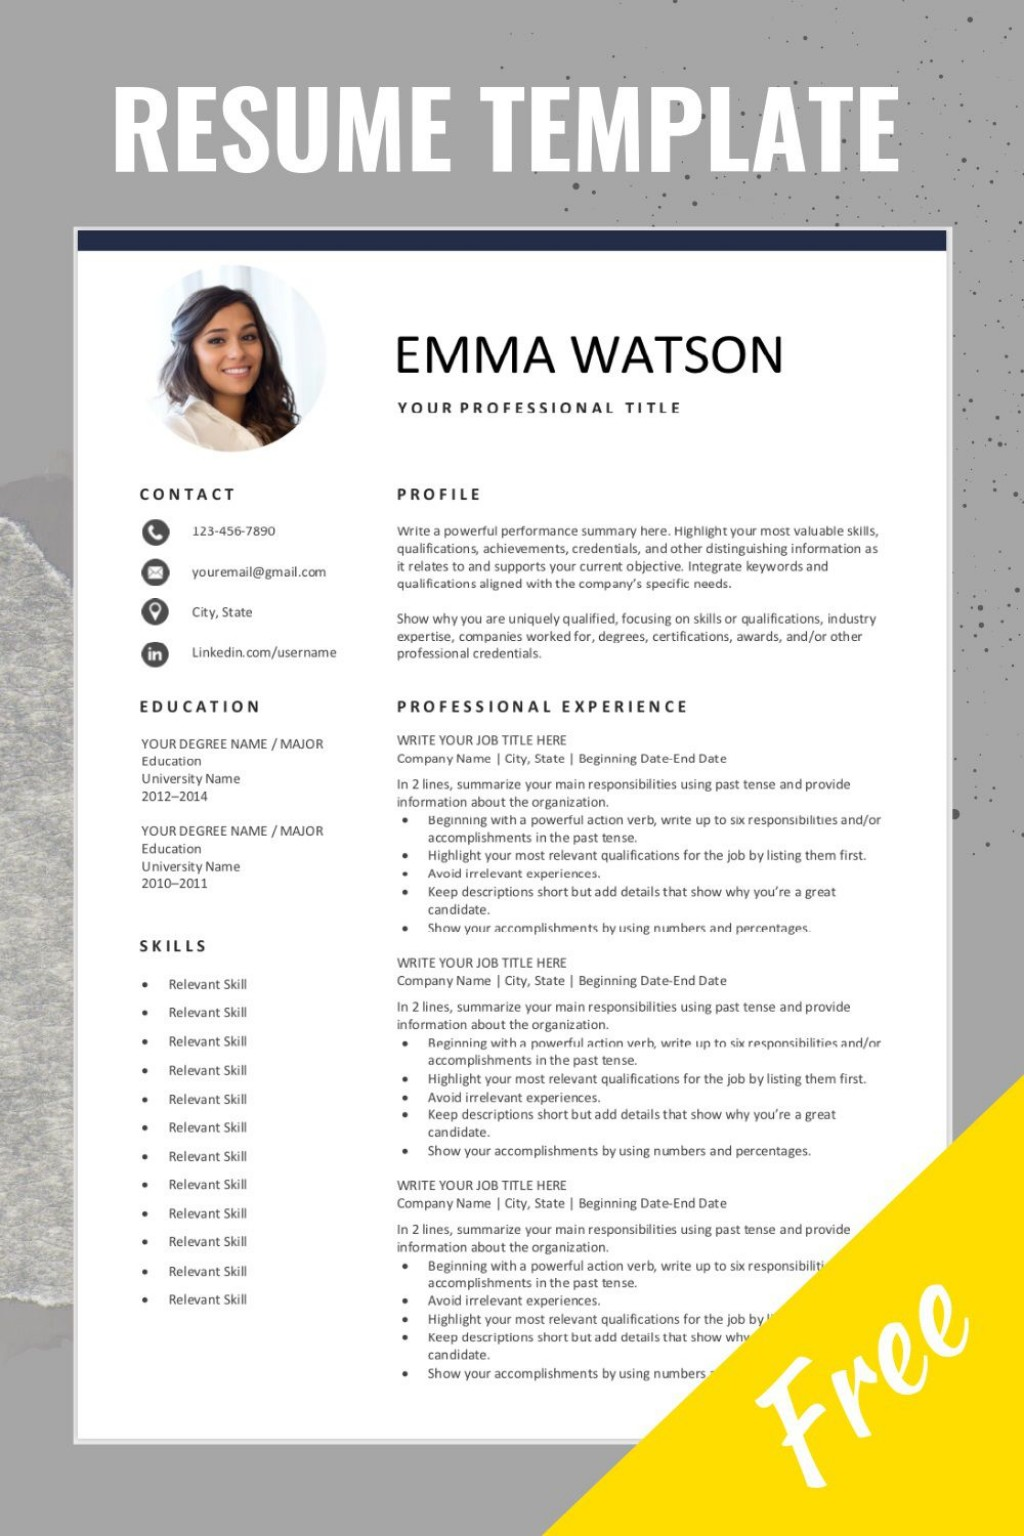 000 Exceptional Free Resume Template Microsoft Word Picture  2007 Eye Catching Download 2010Large